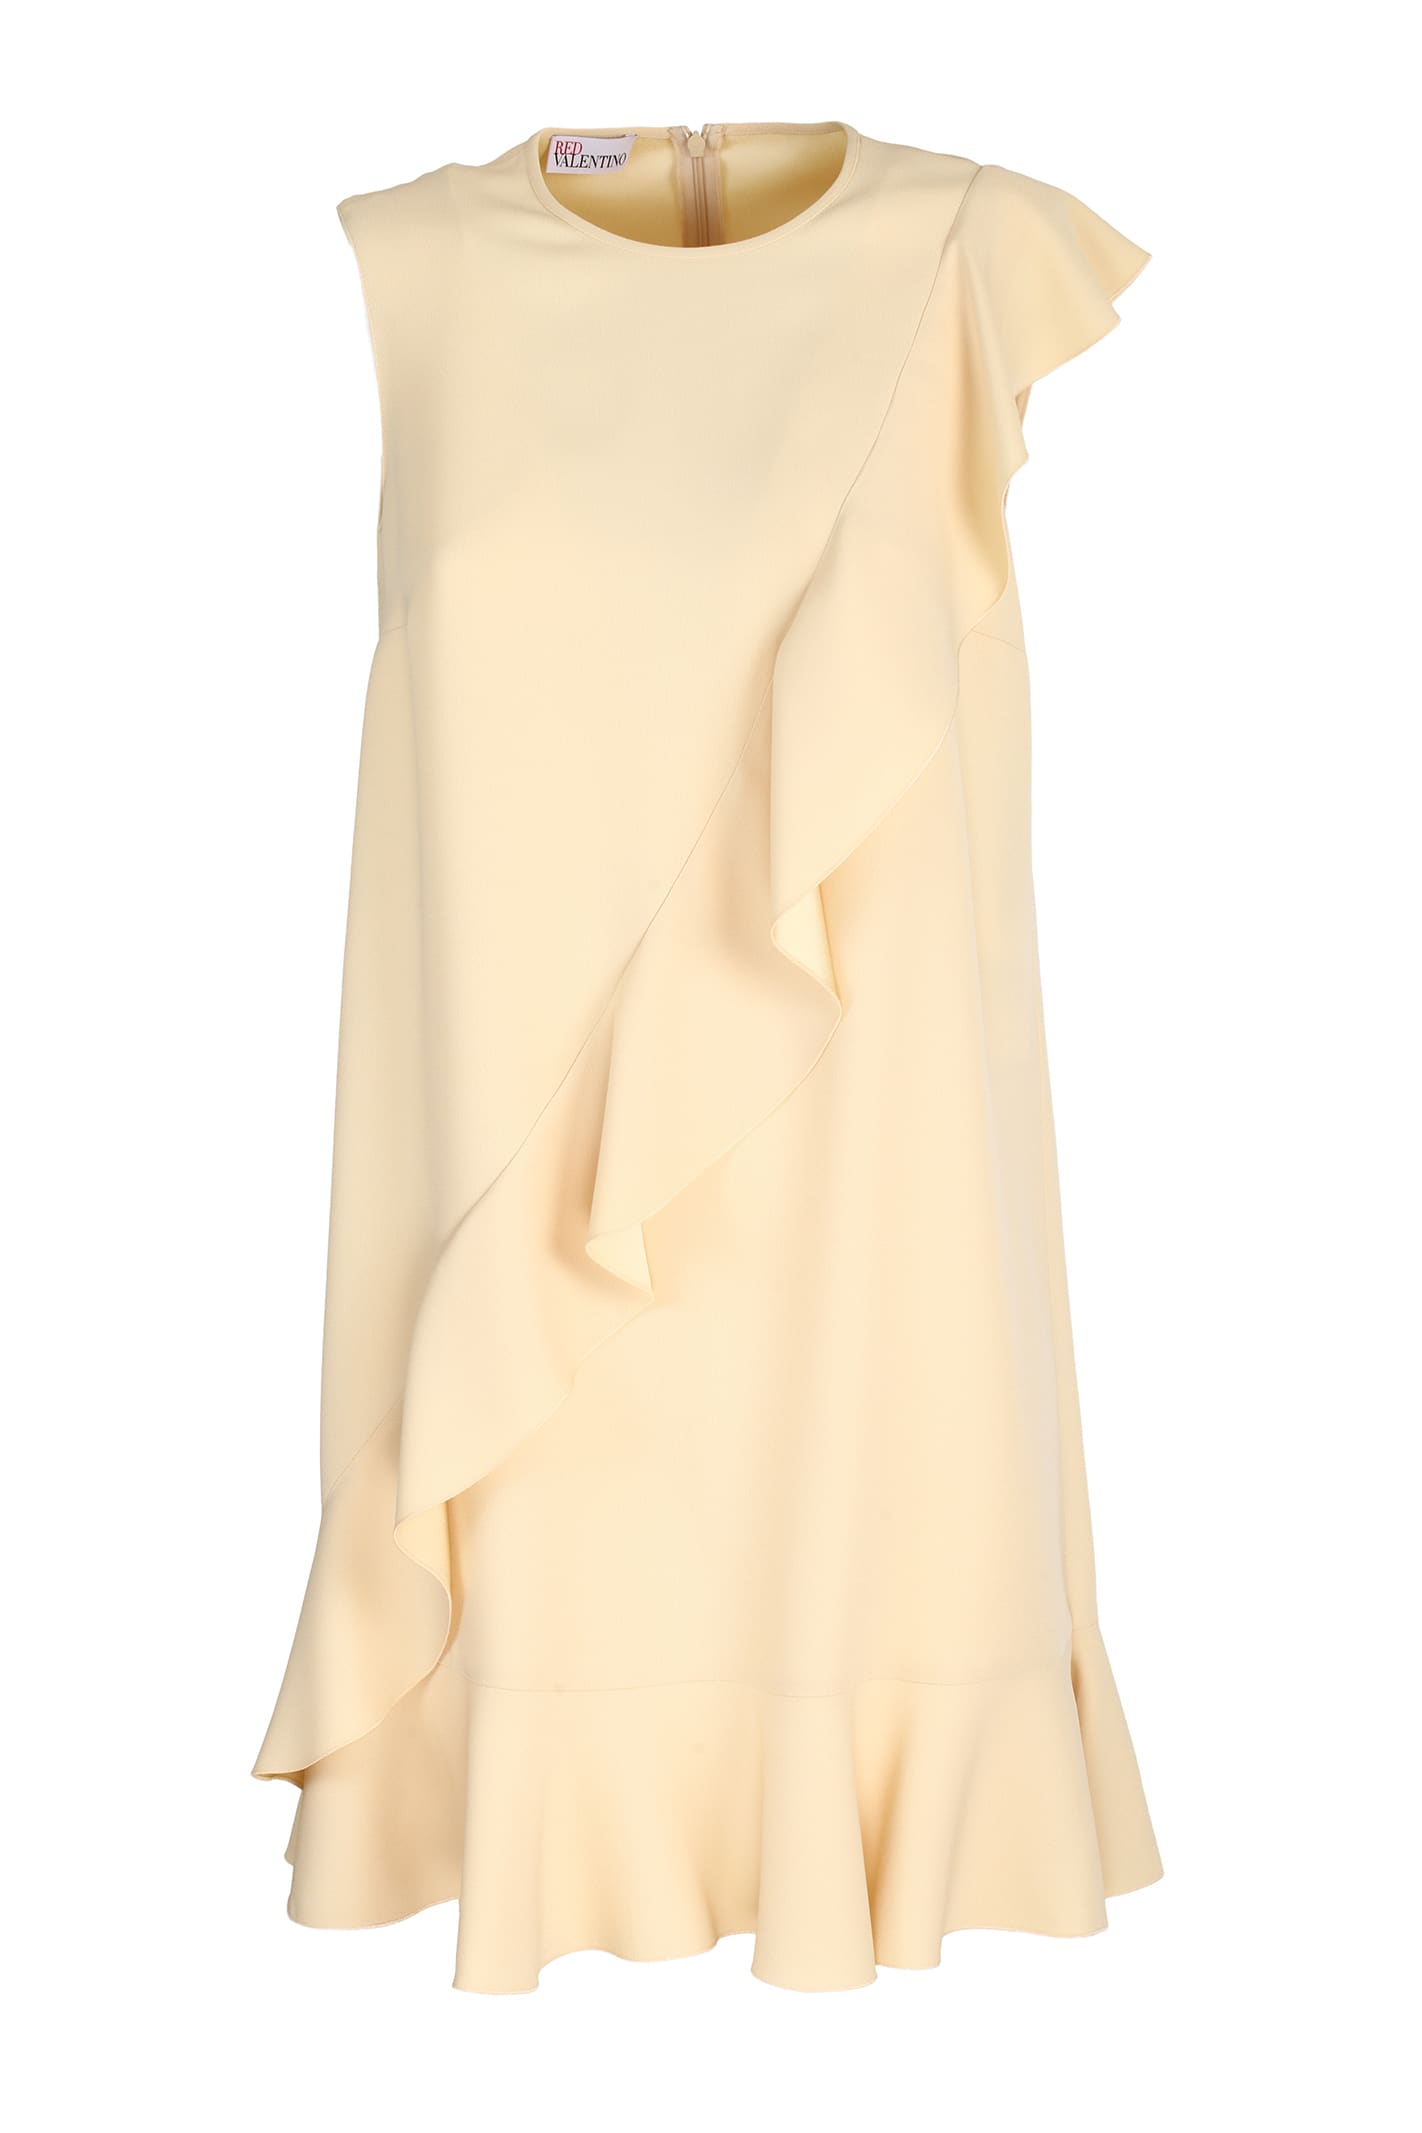 Buy Red Valentino crepe envers satin dress online, shop RED Valentino with free shipping